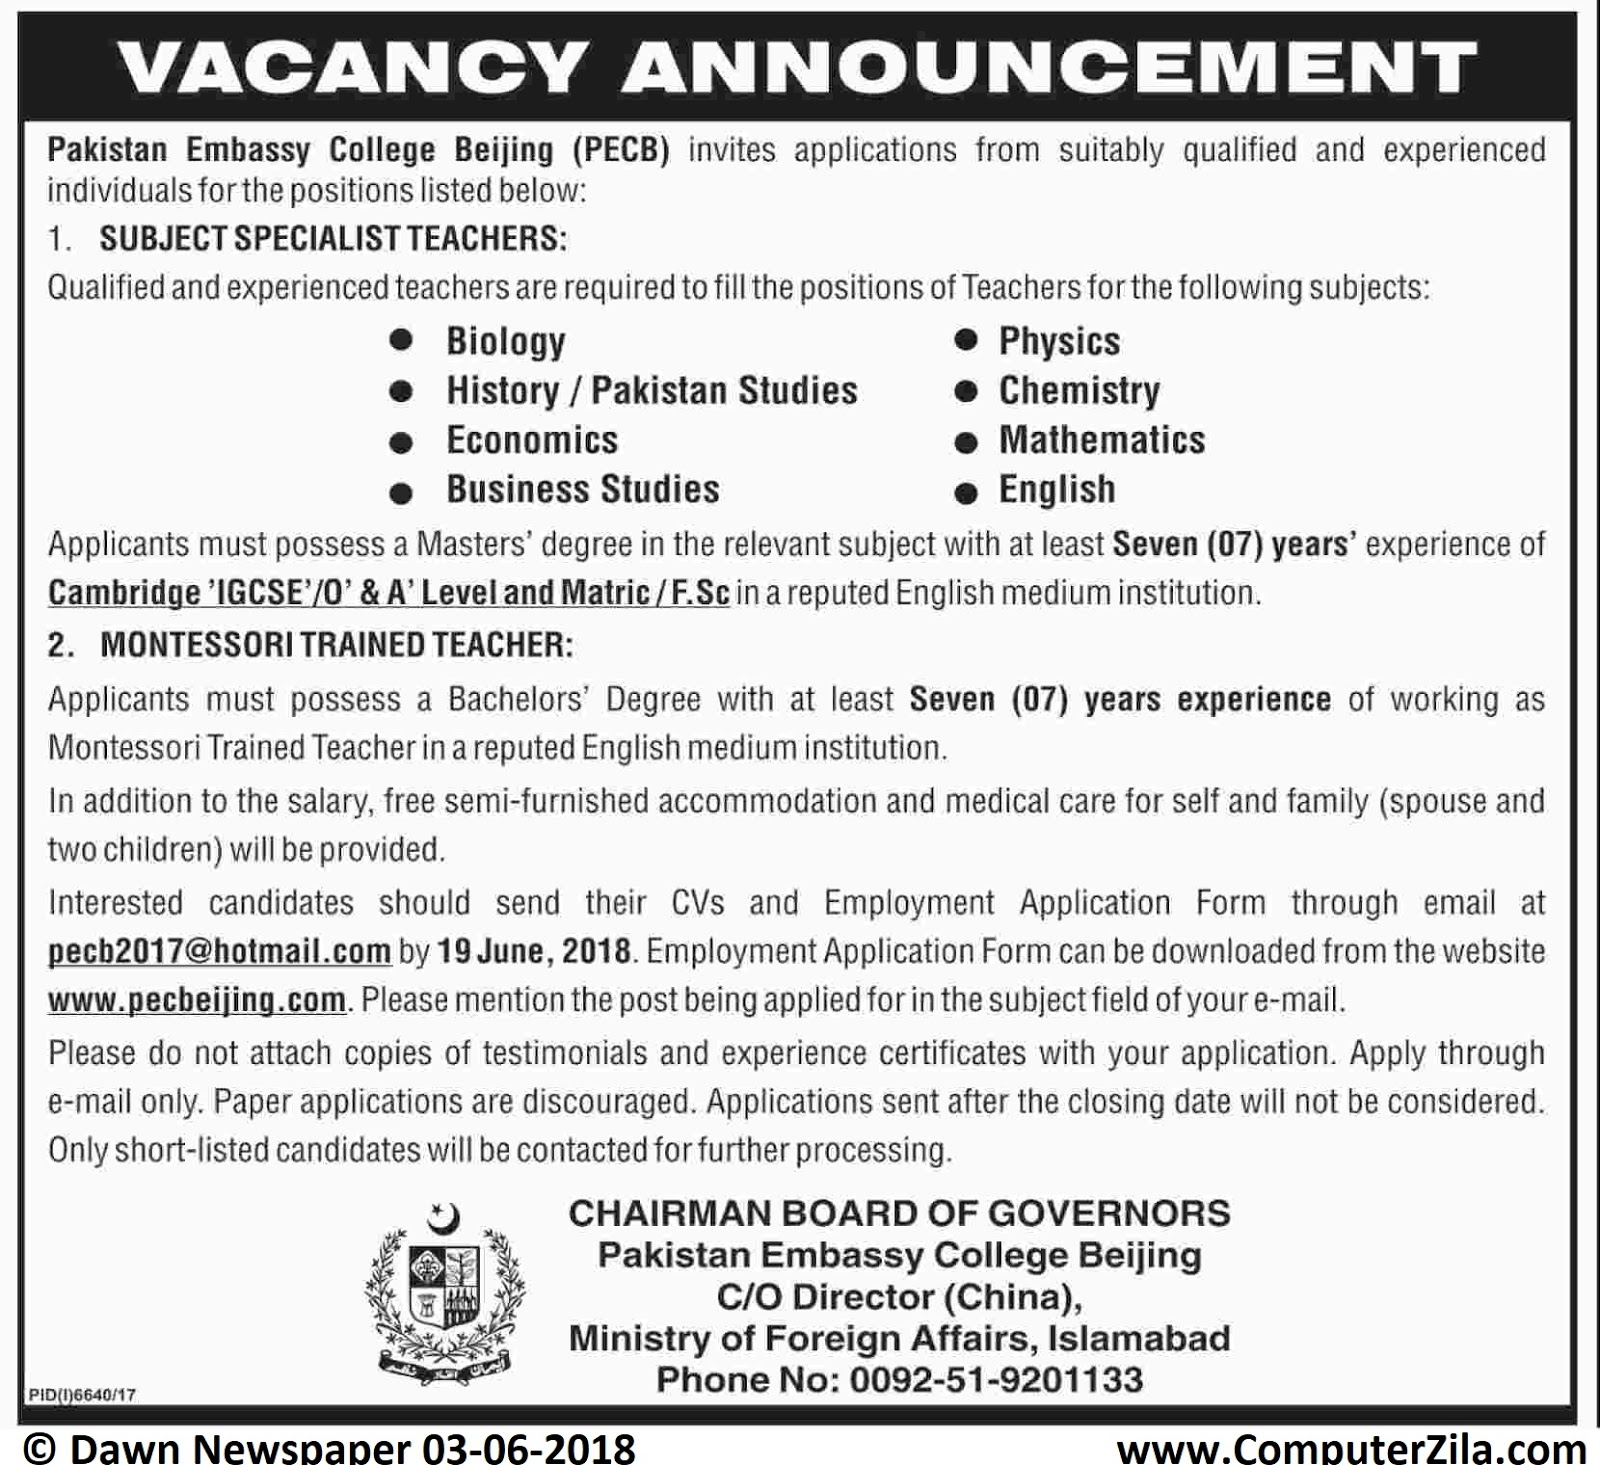 Vacancy Announcement at Pakistan Embassy College Beijing